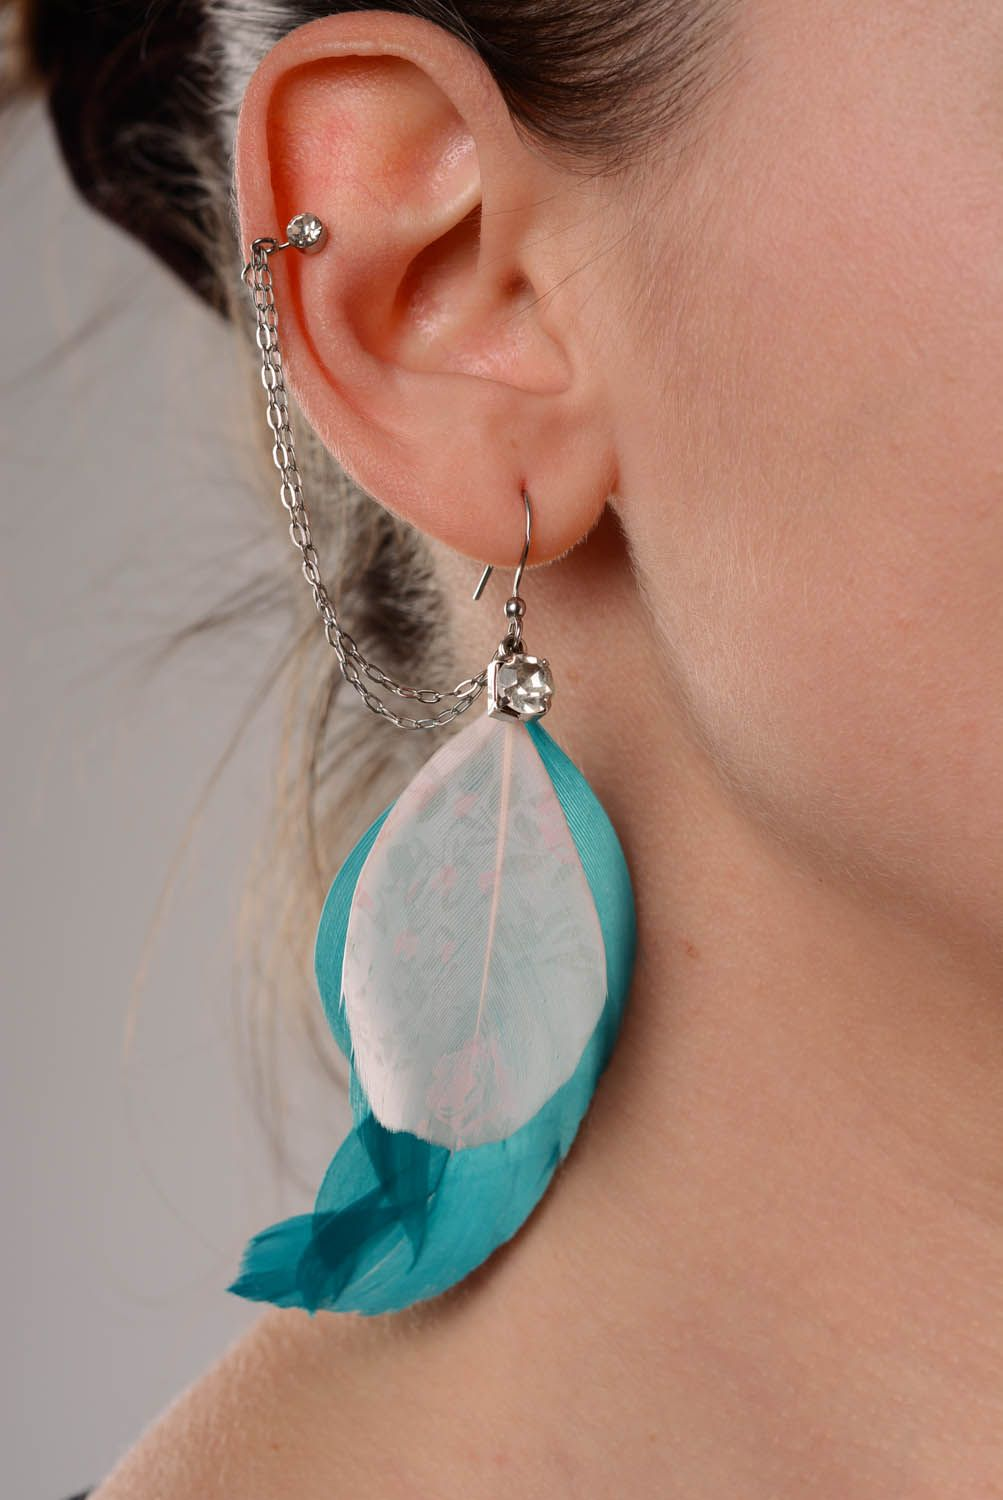 Handmade cuff earrings Milk-White Feathers photo 3